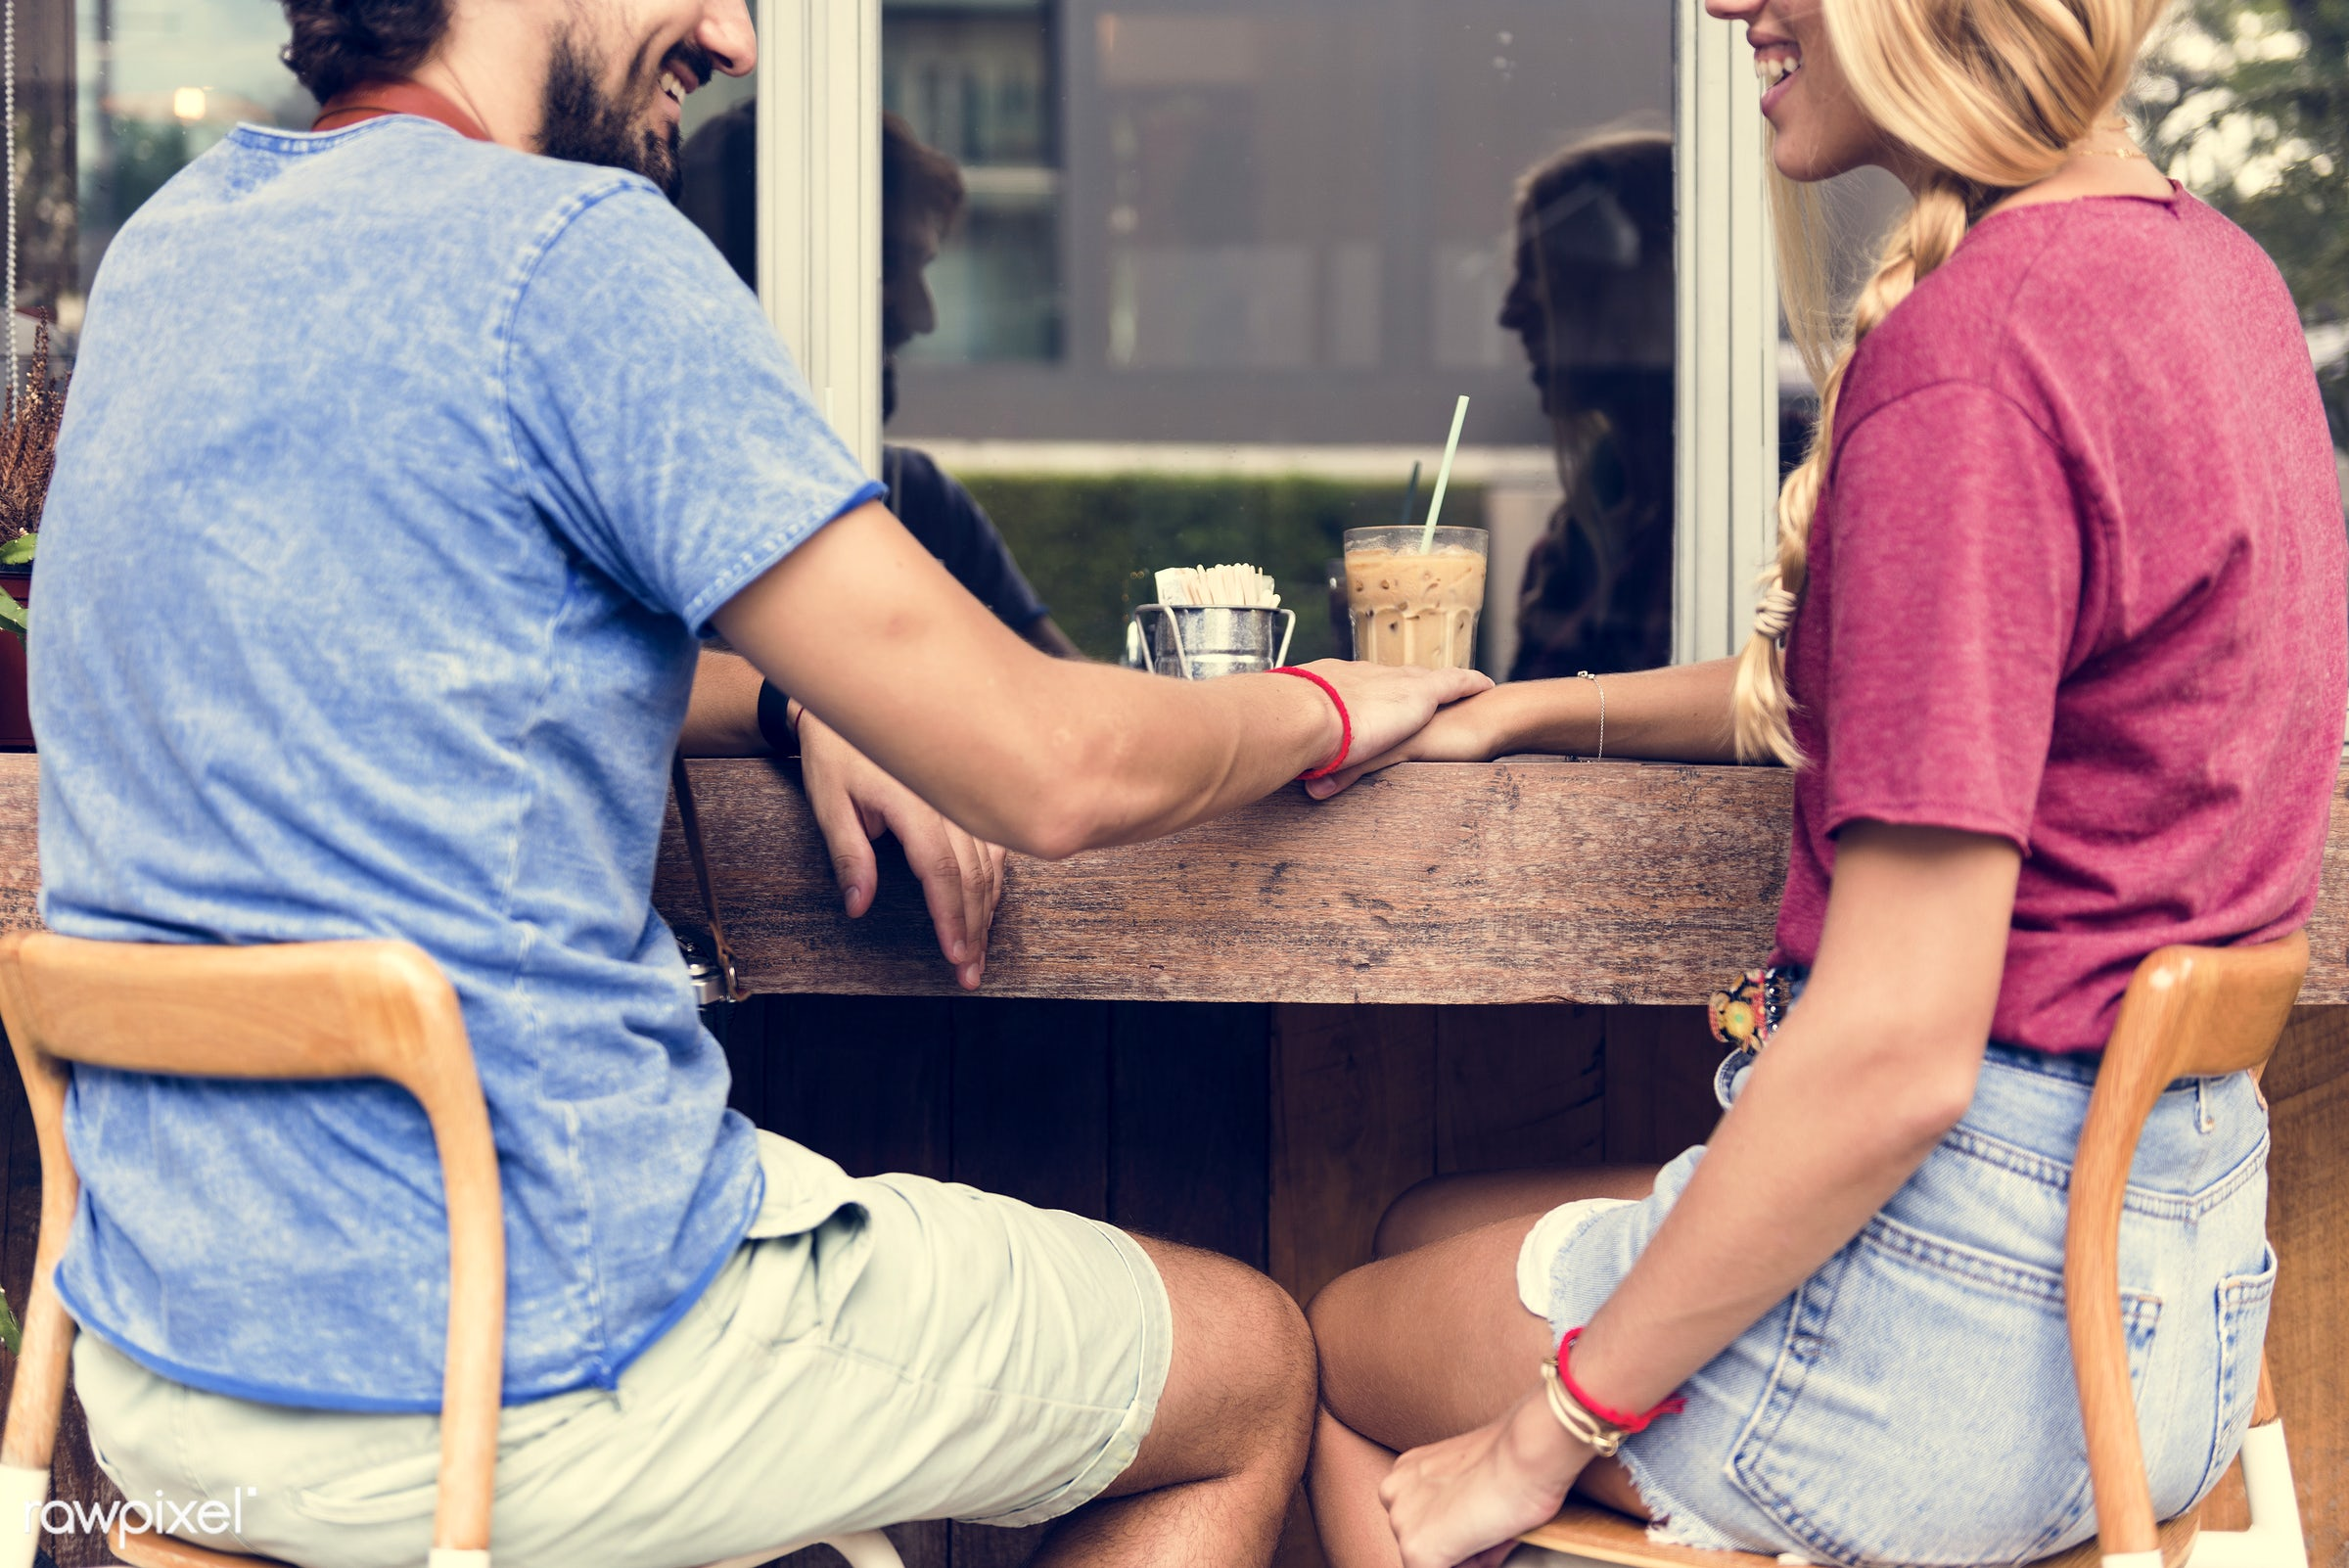 date, restaurant, people, coffee shop, together, love, girl, staring, woman, partner, couple, smile, cheerful, man, smiling...